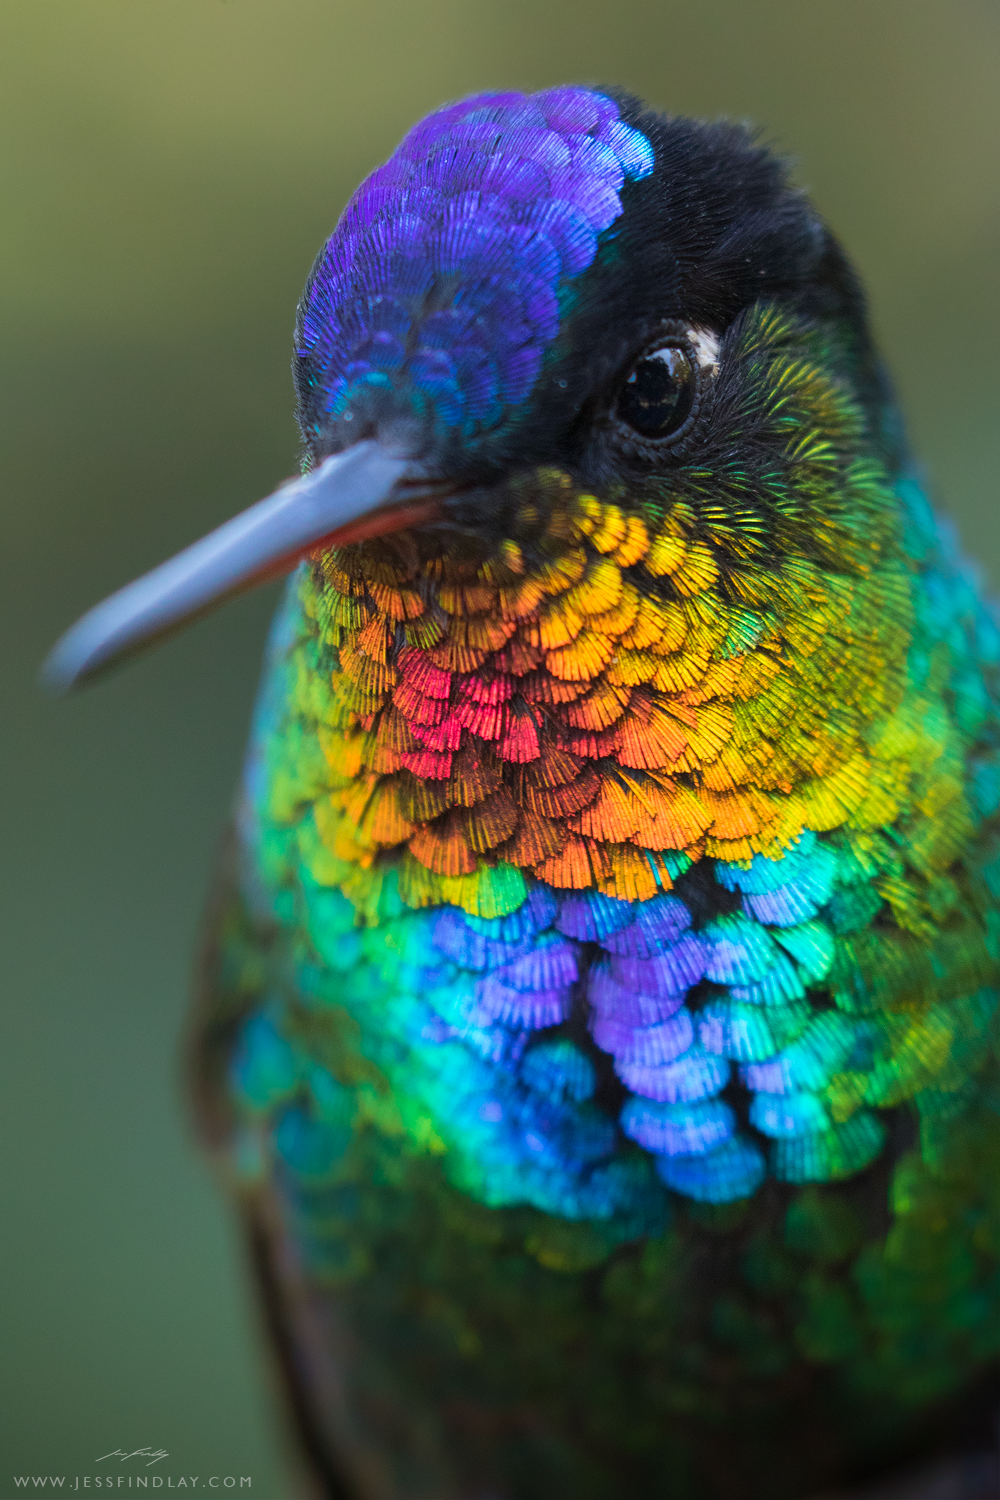 The dazzling iridescent plumage of a Fiery-throated Hummingbird on full display. Photographed in the Talamanca Mountains of Costa Rica.